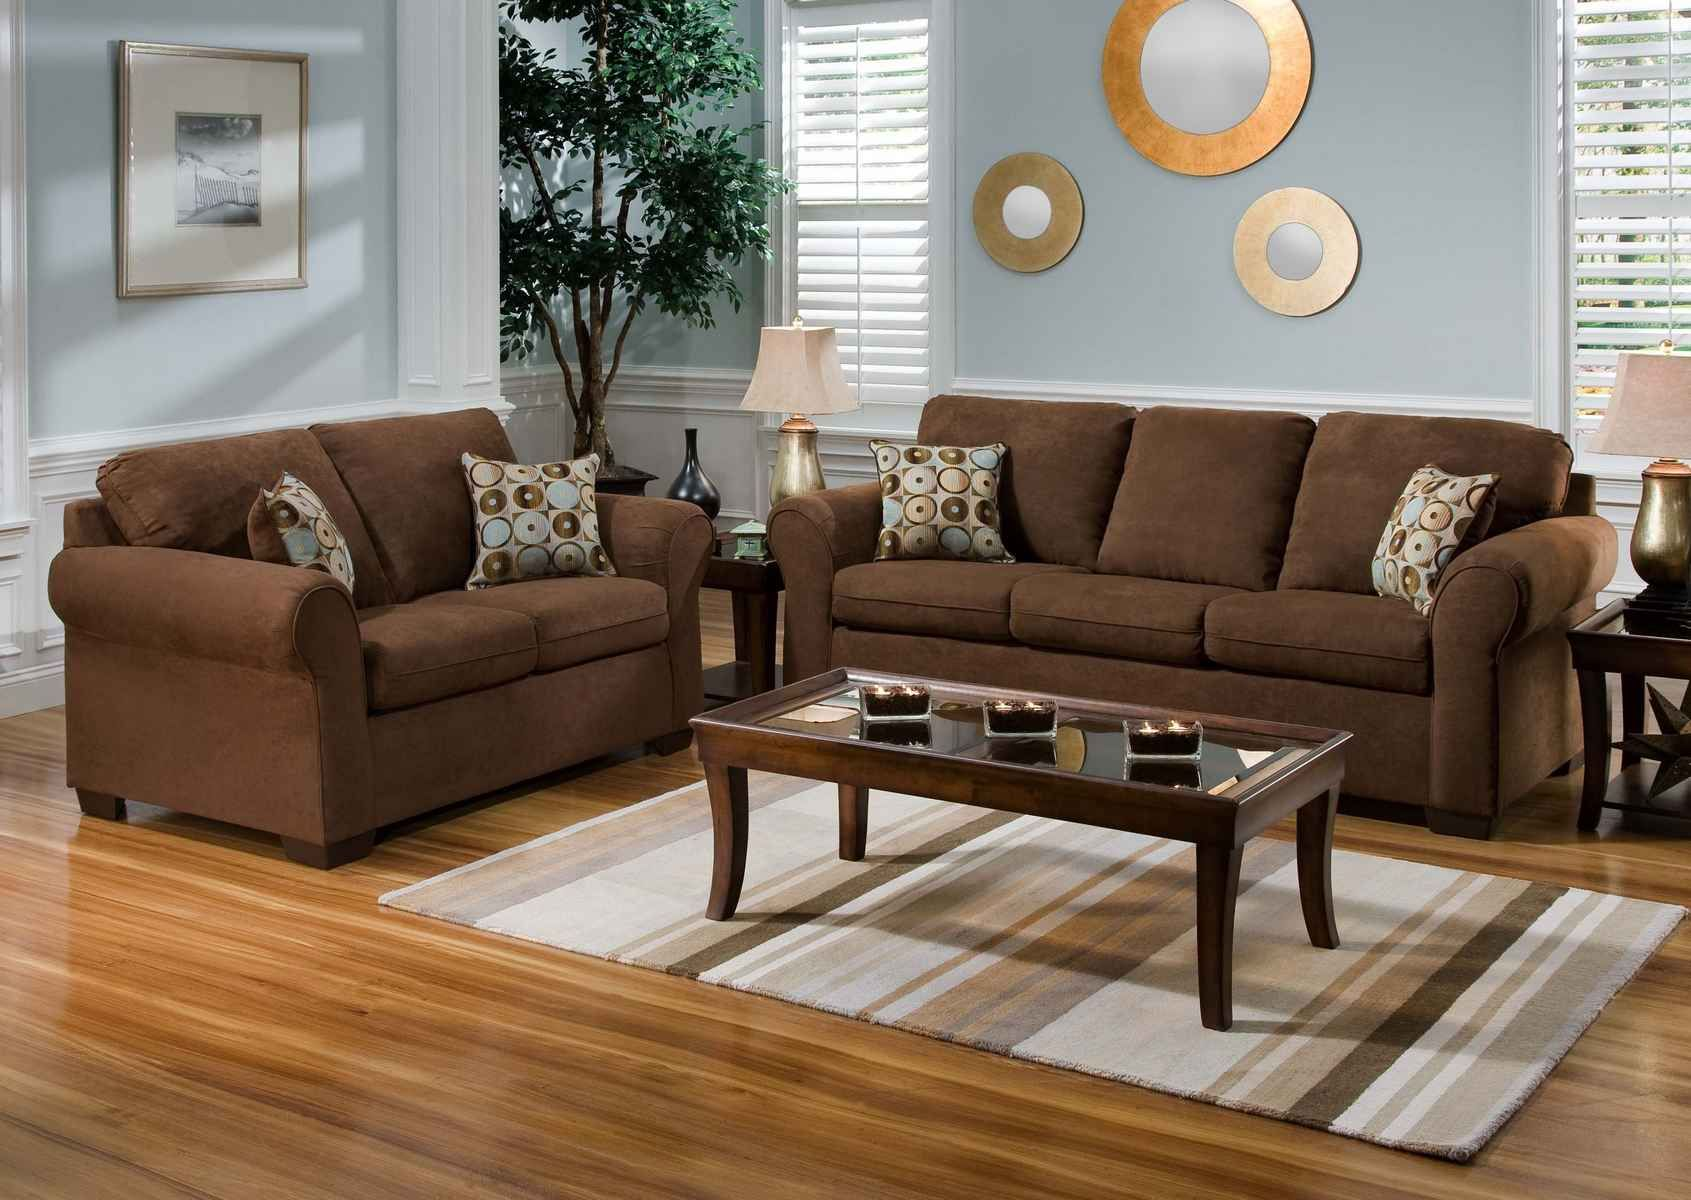 Living Room Color Ideas For Light Brown Furniture With Stairs Design Blue Schemes Home Newest Couches Modern Ocean Pastel Walls Laminate Harwood Flooring And White